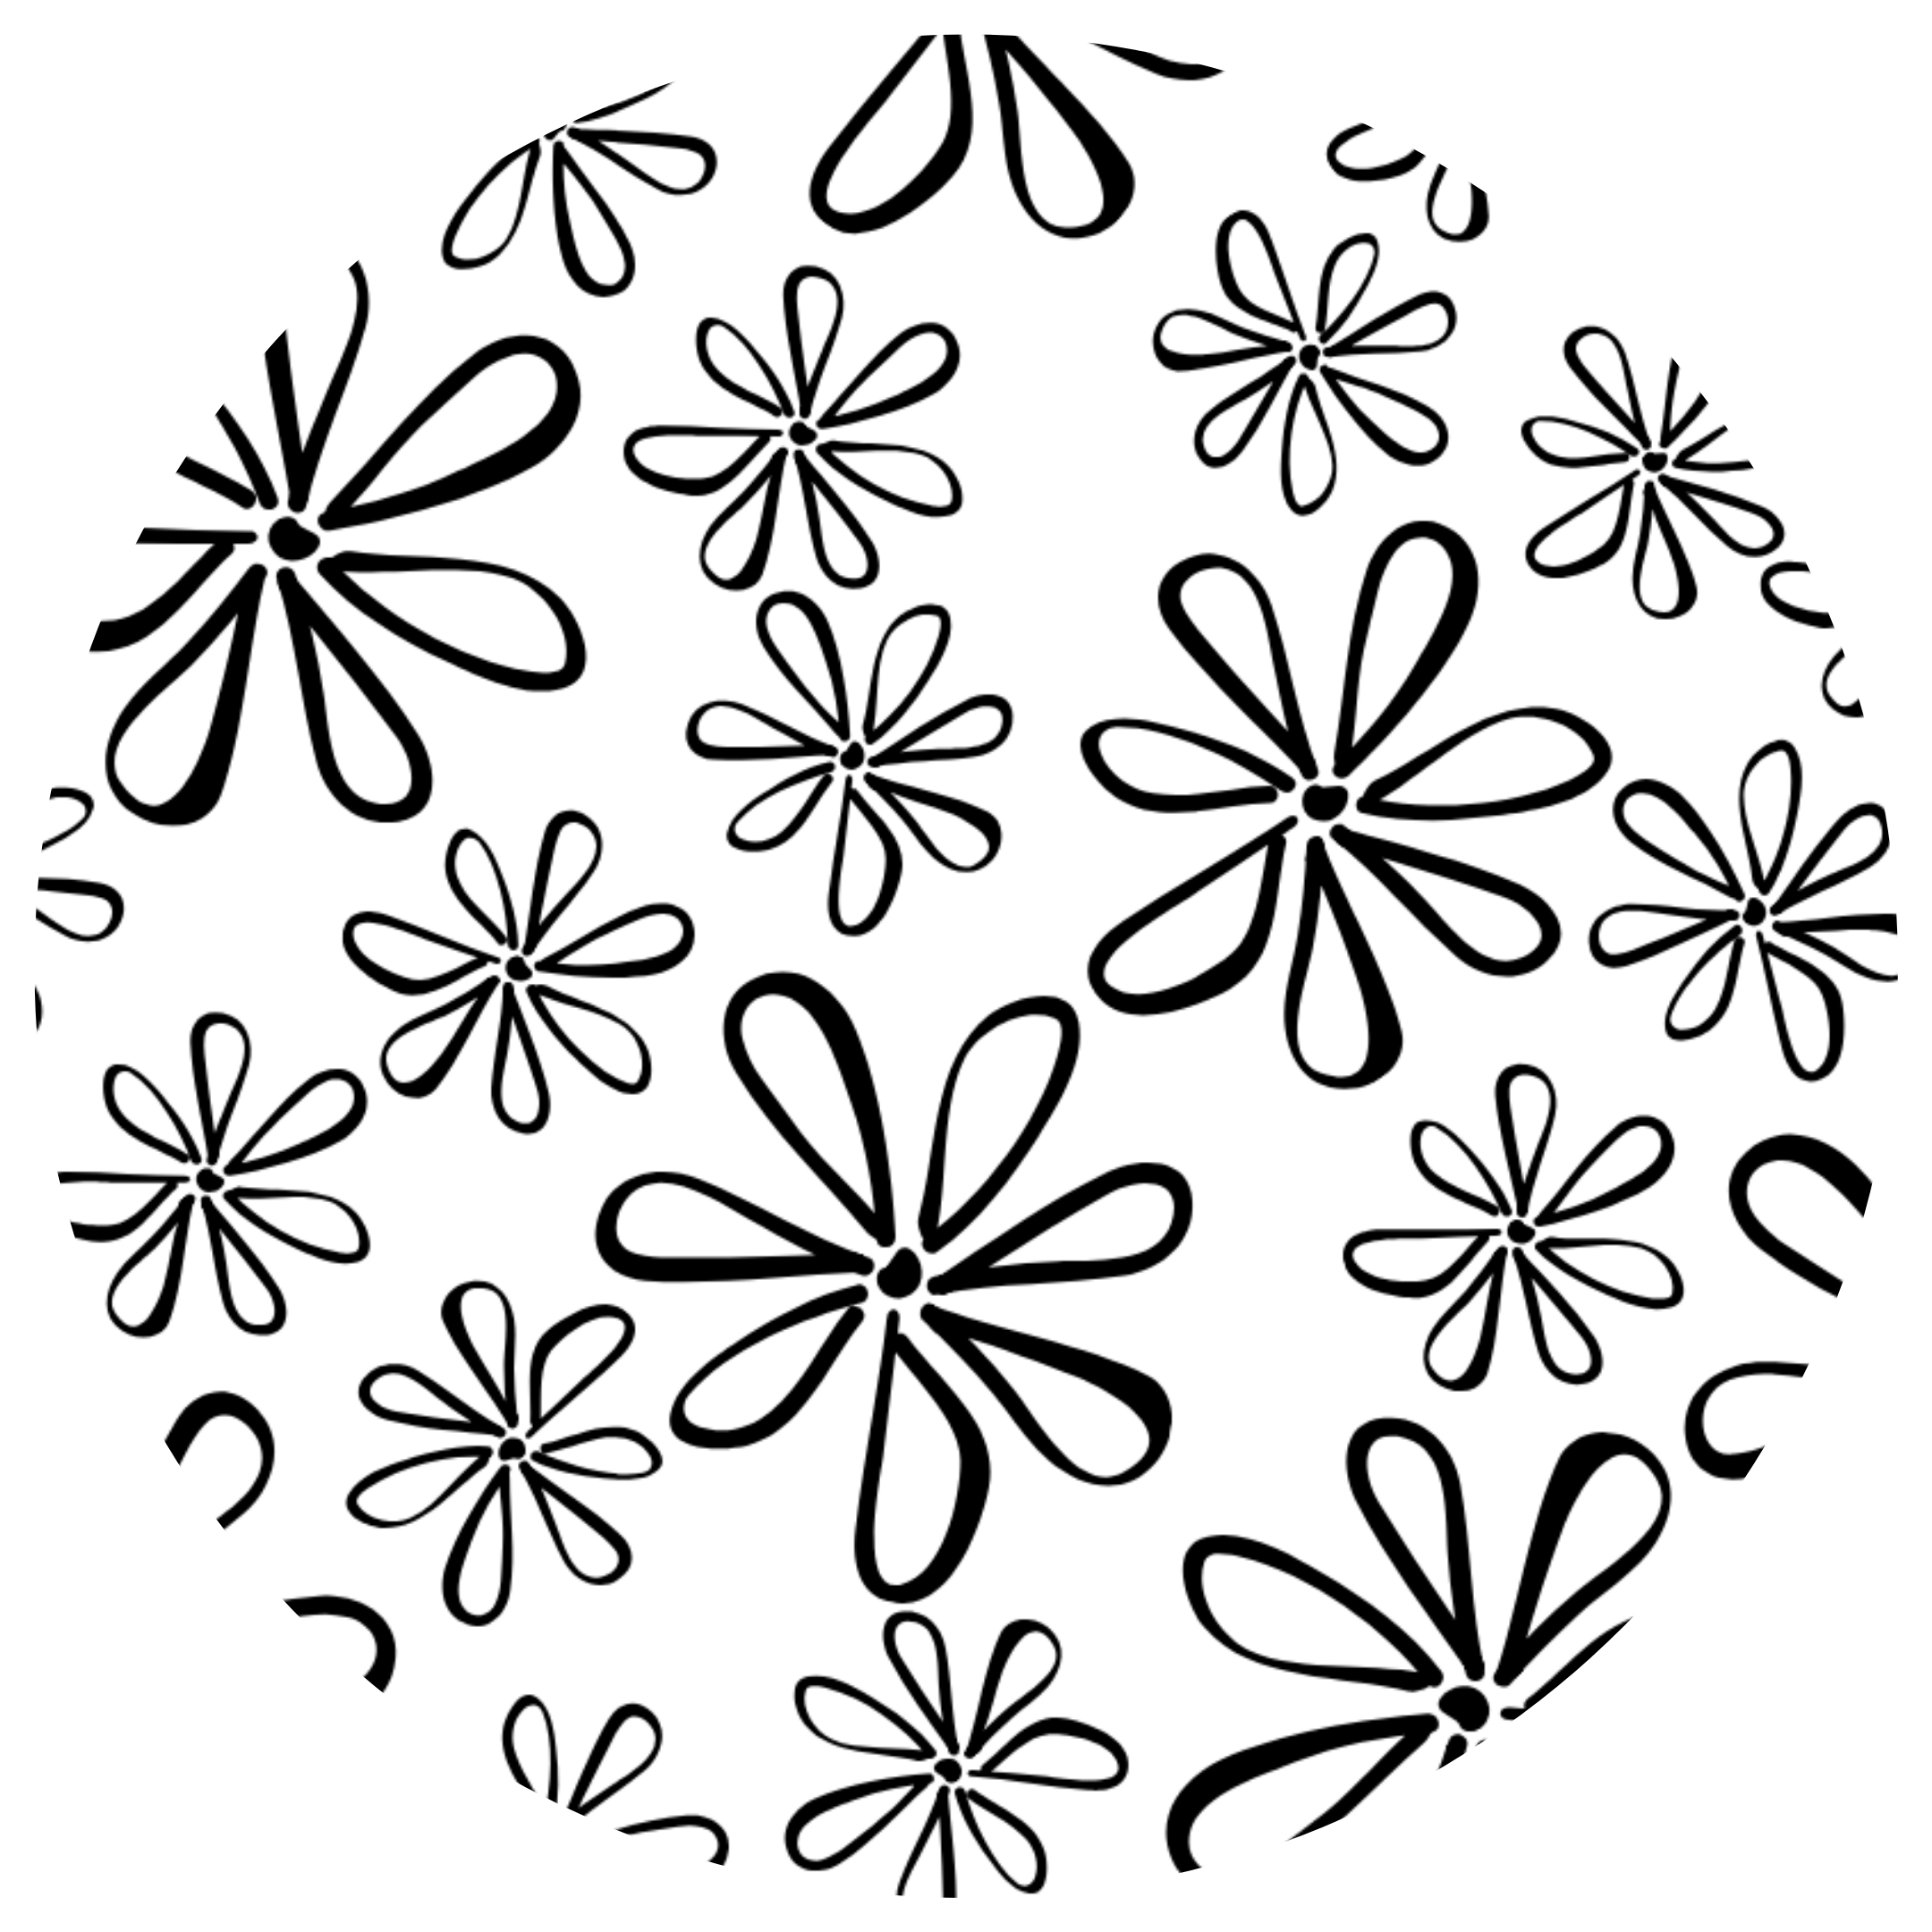 Flirty Flowers Coloring Sheet